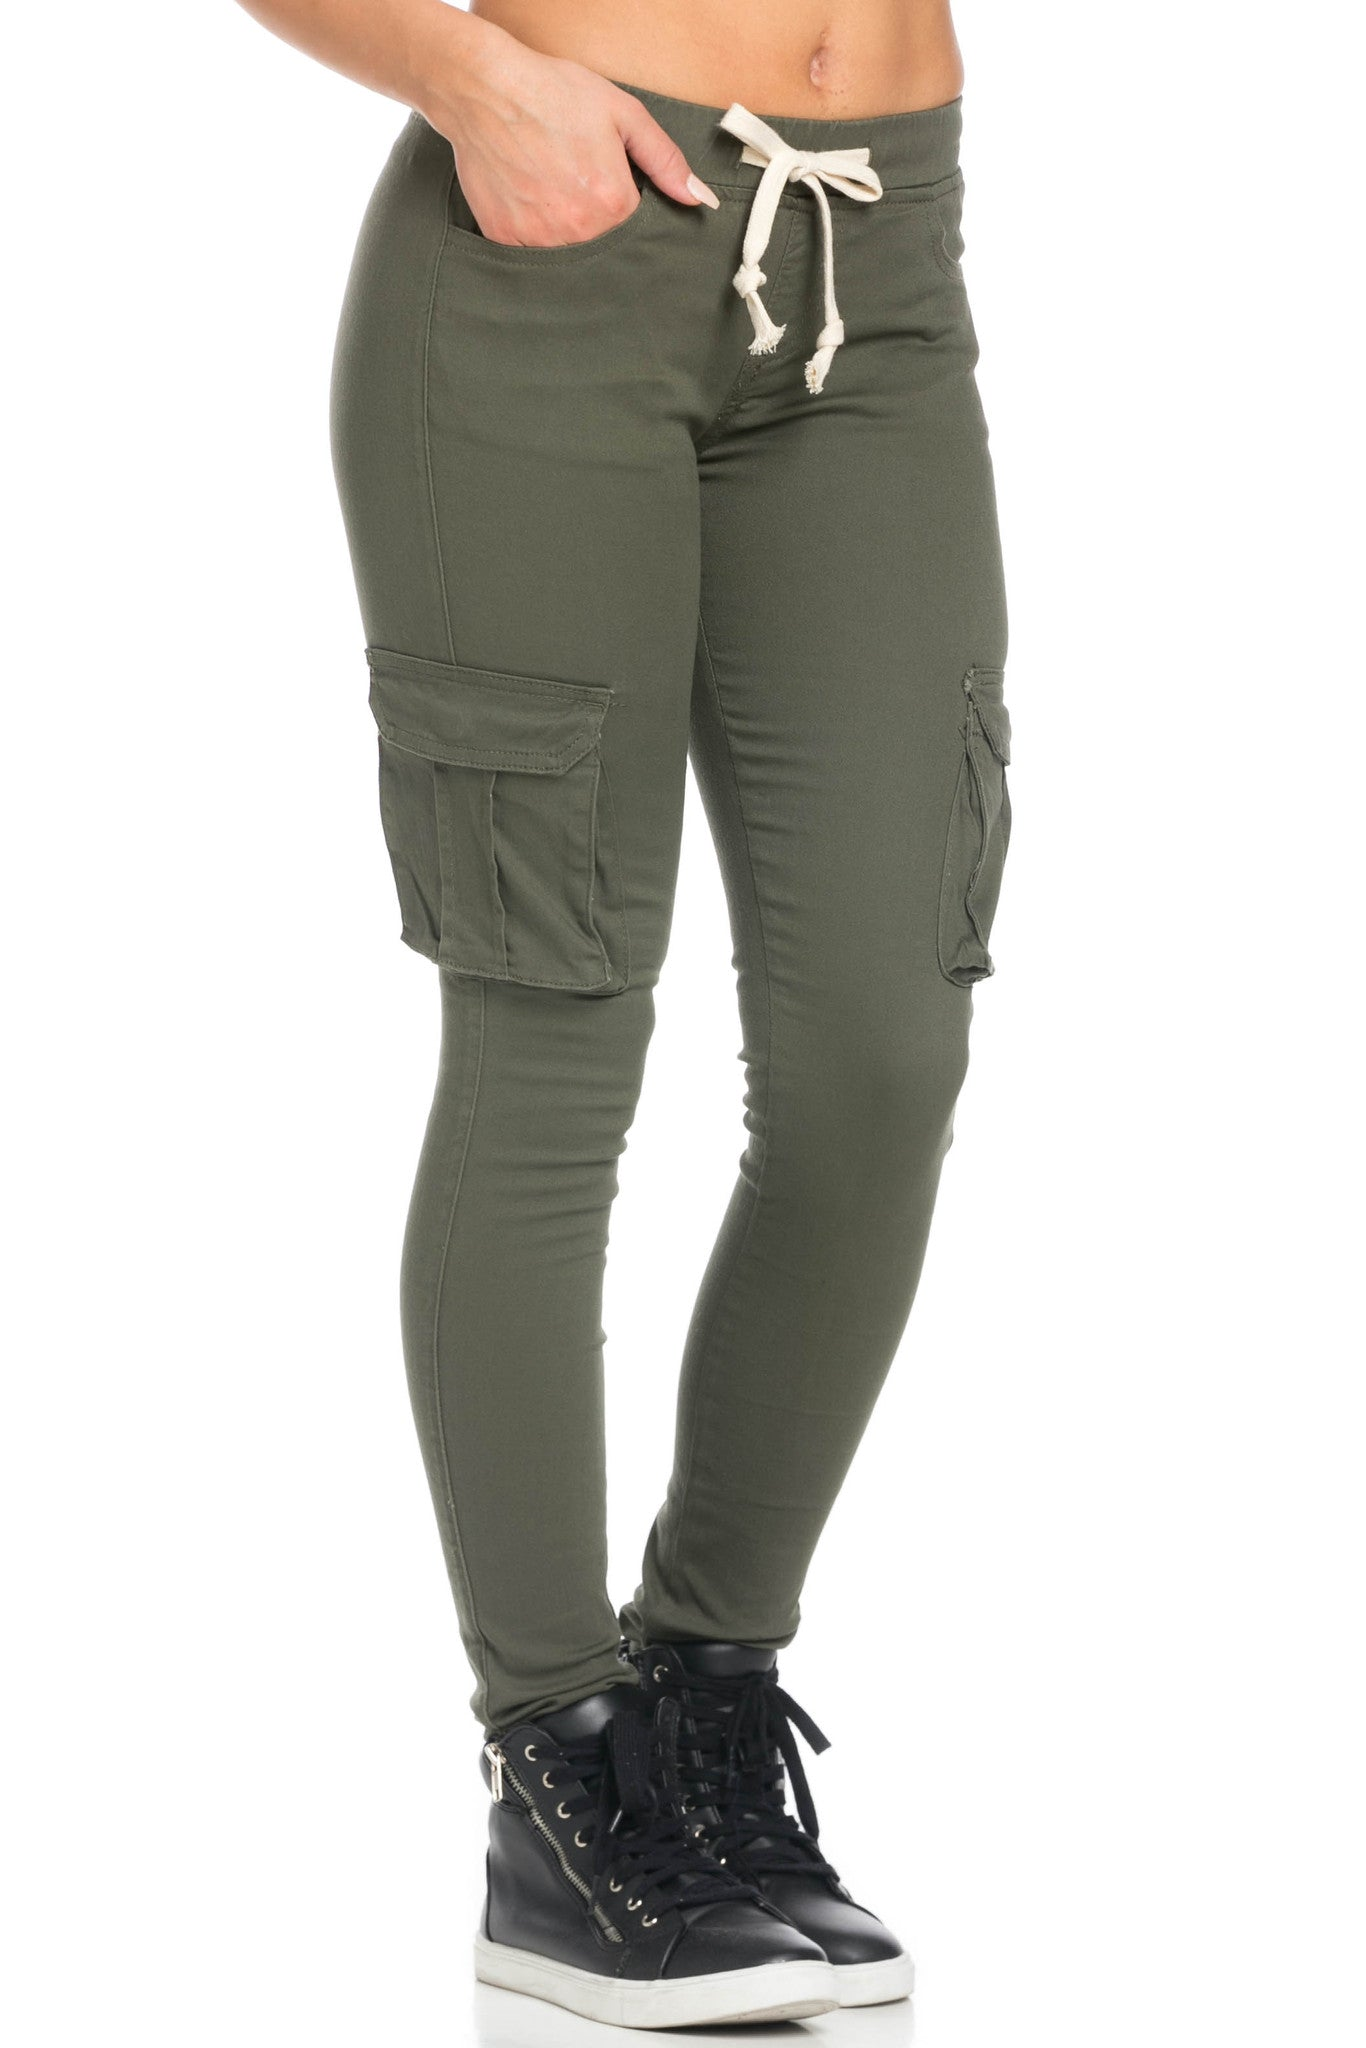 Mid Rise Skinny Olive Cargo Pants - Pants - My Yuccie - 5